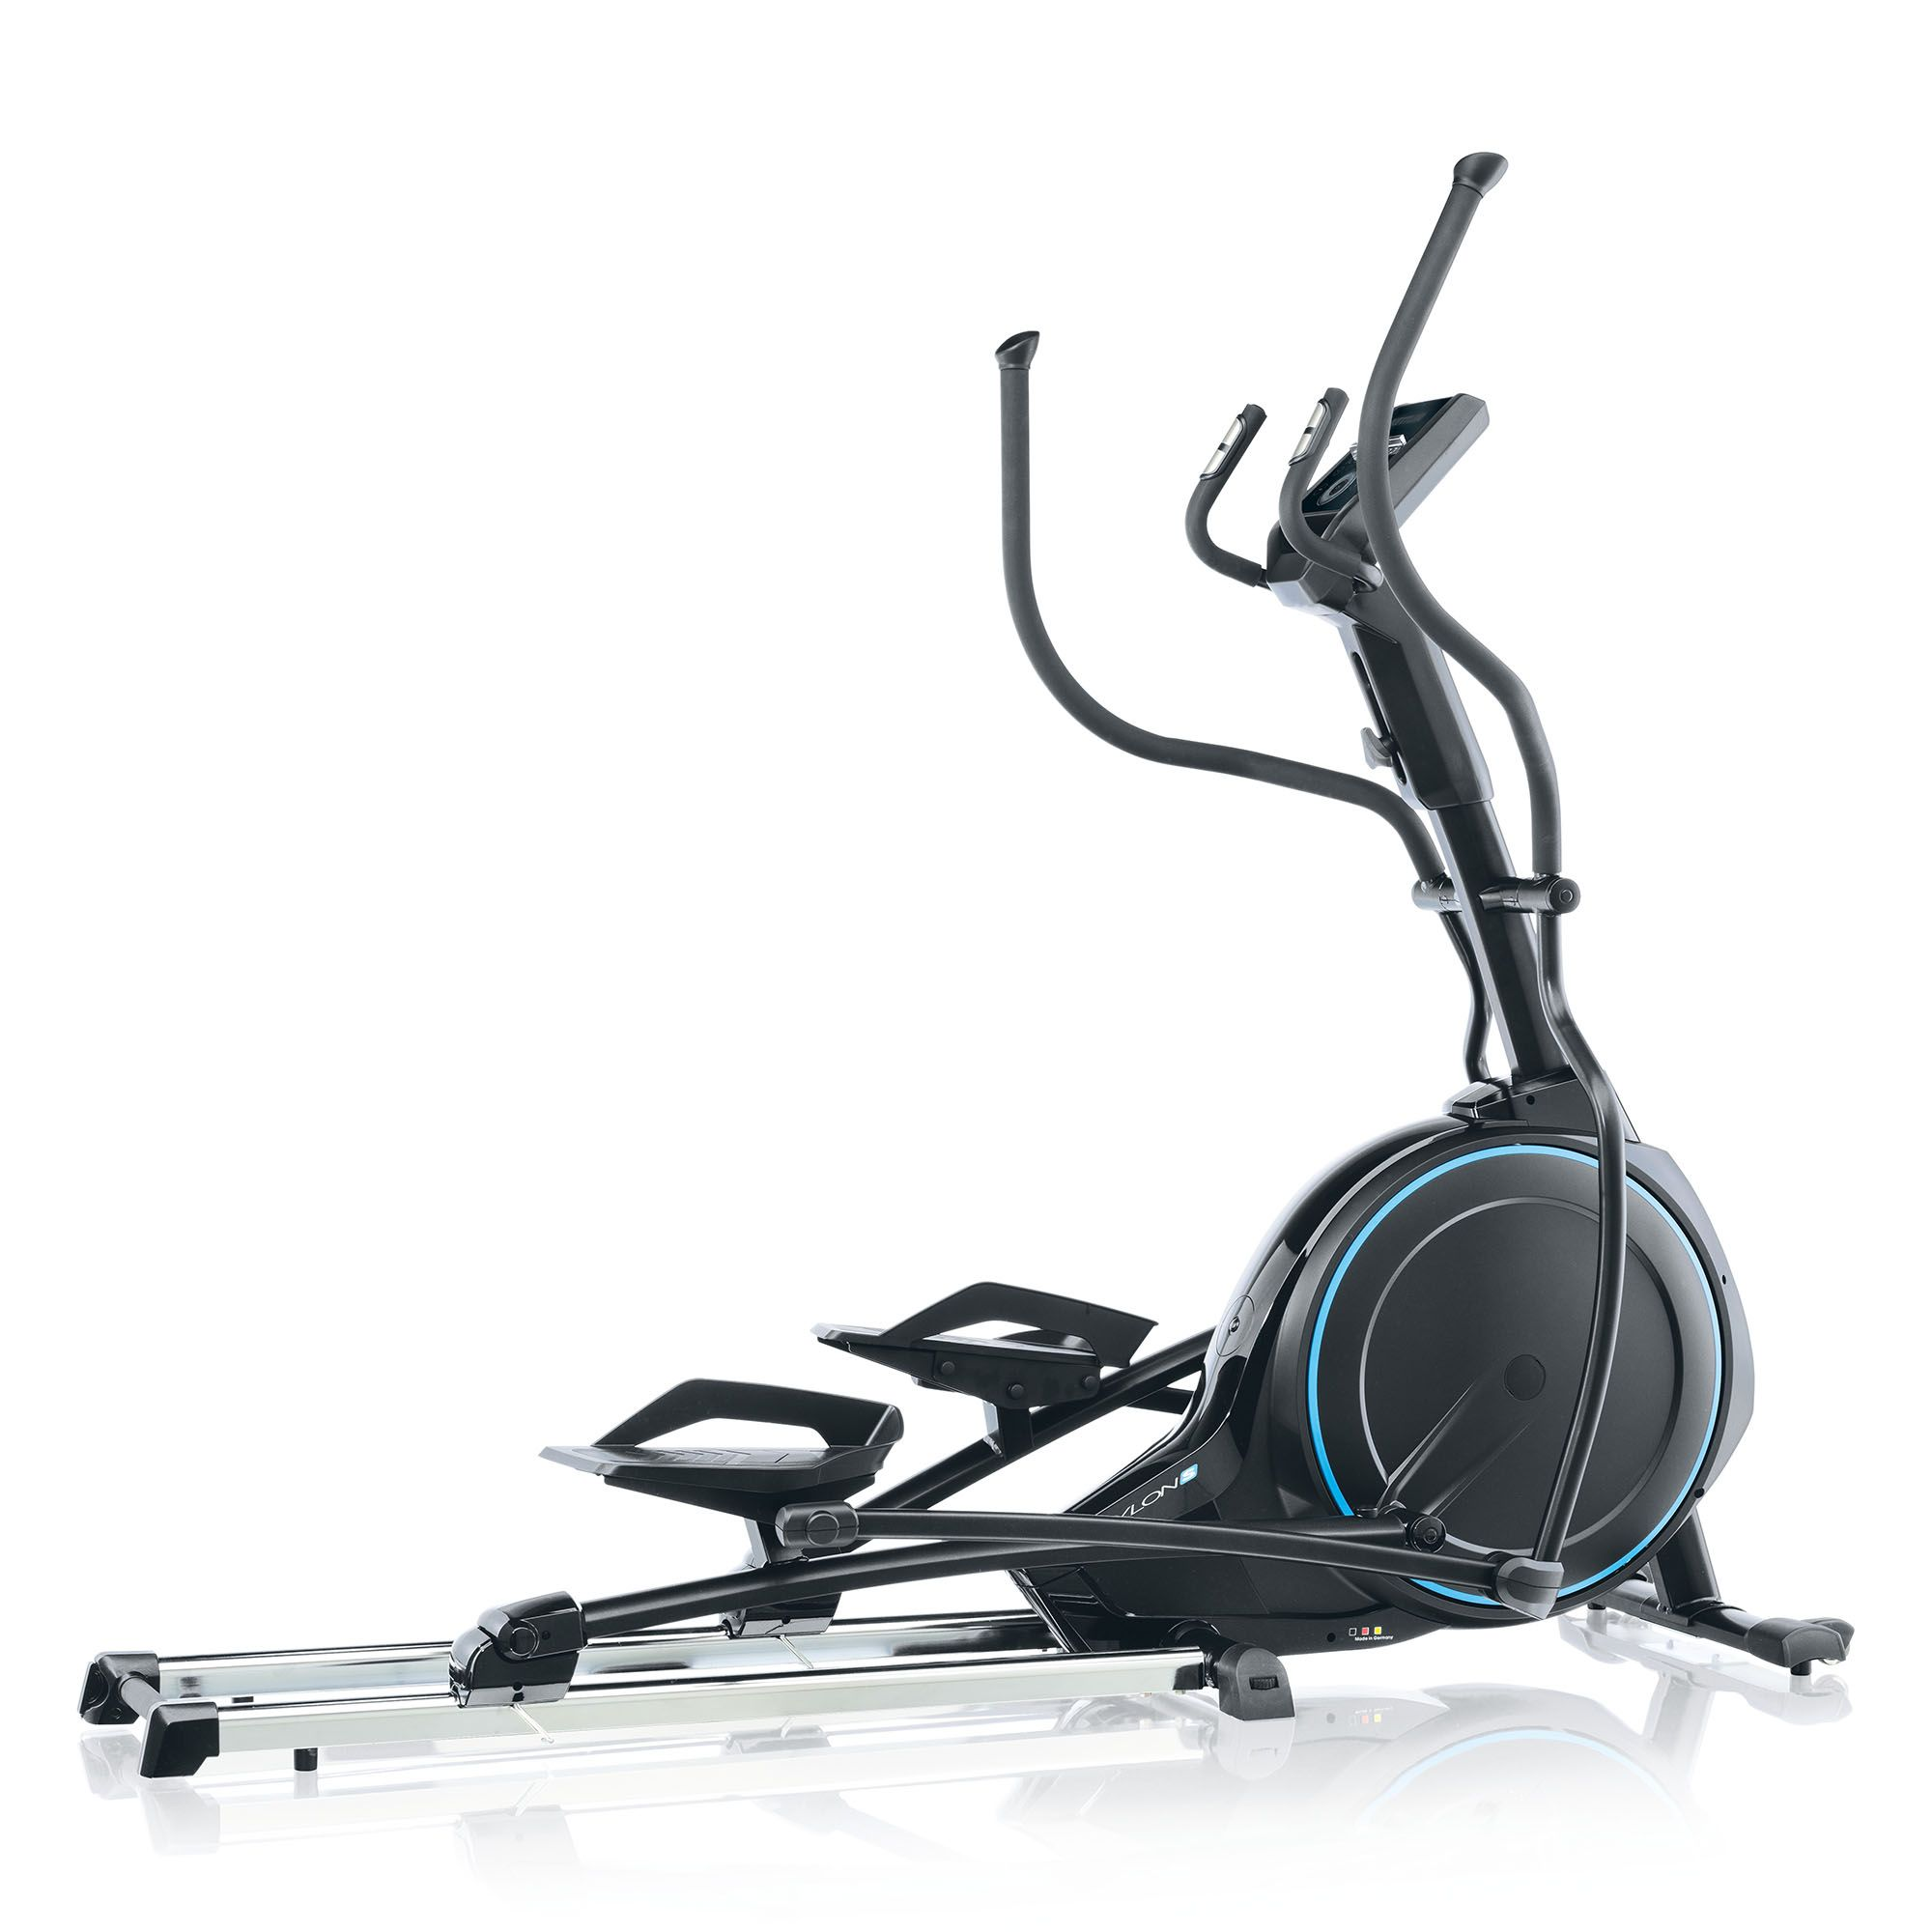 kettler skylon s folding elliptical cross trainer. Black Bedroom Furniture Sets. Home Design Ideas